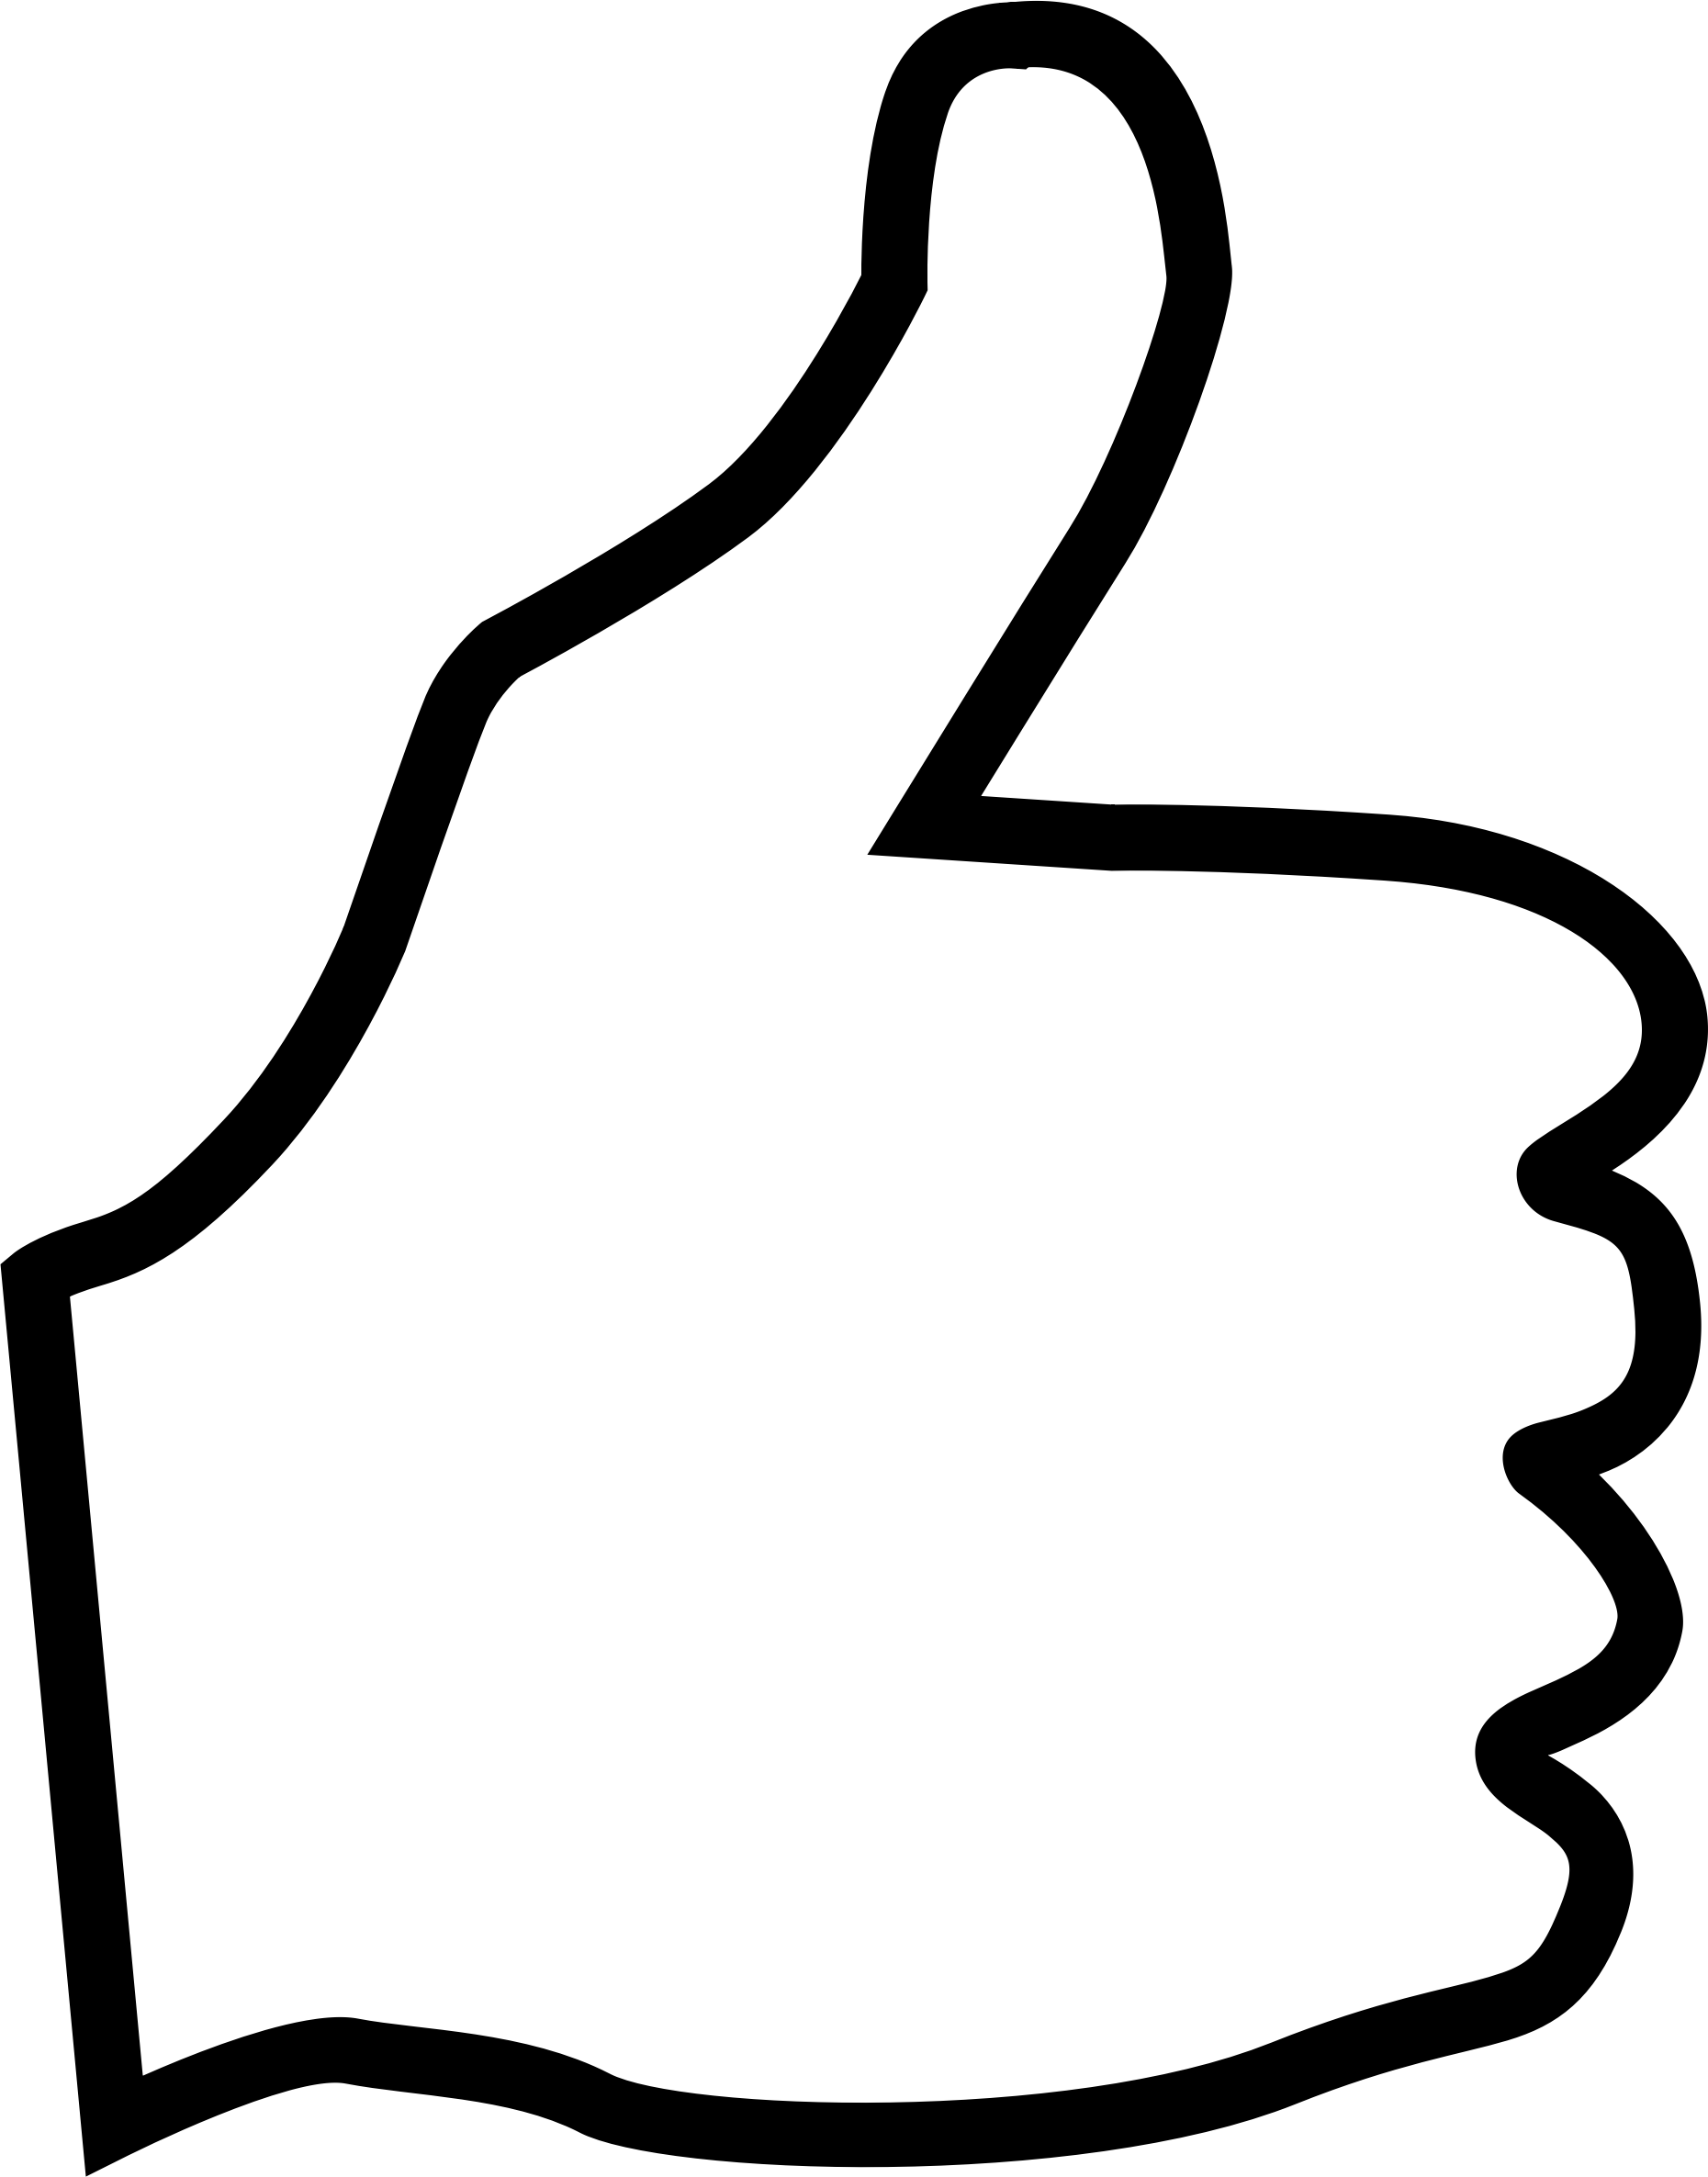 Thumbs up outline clipart banner free library Thumbs up outline clipart - ClipartFest banner free library